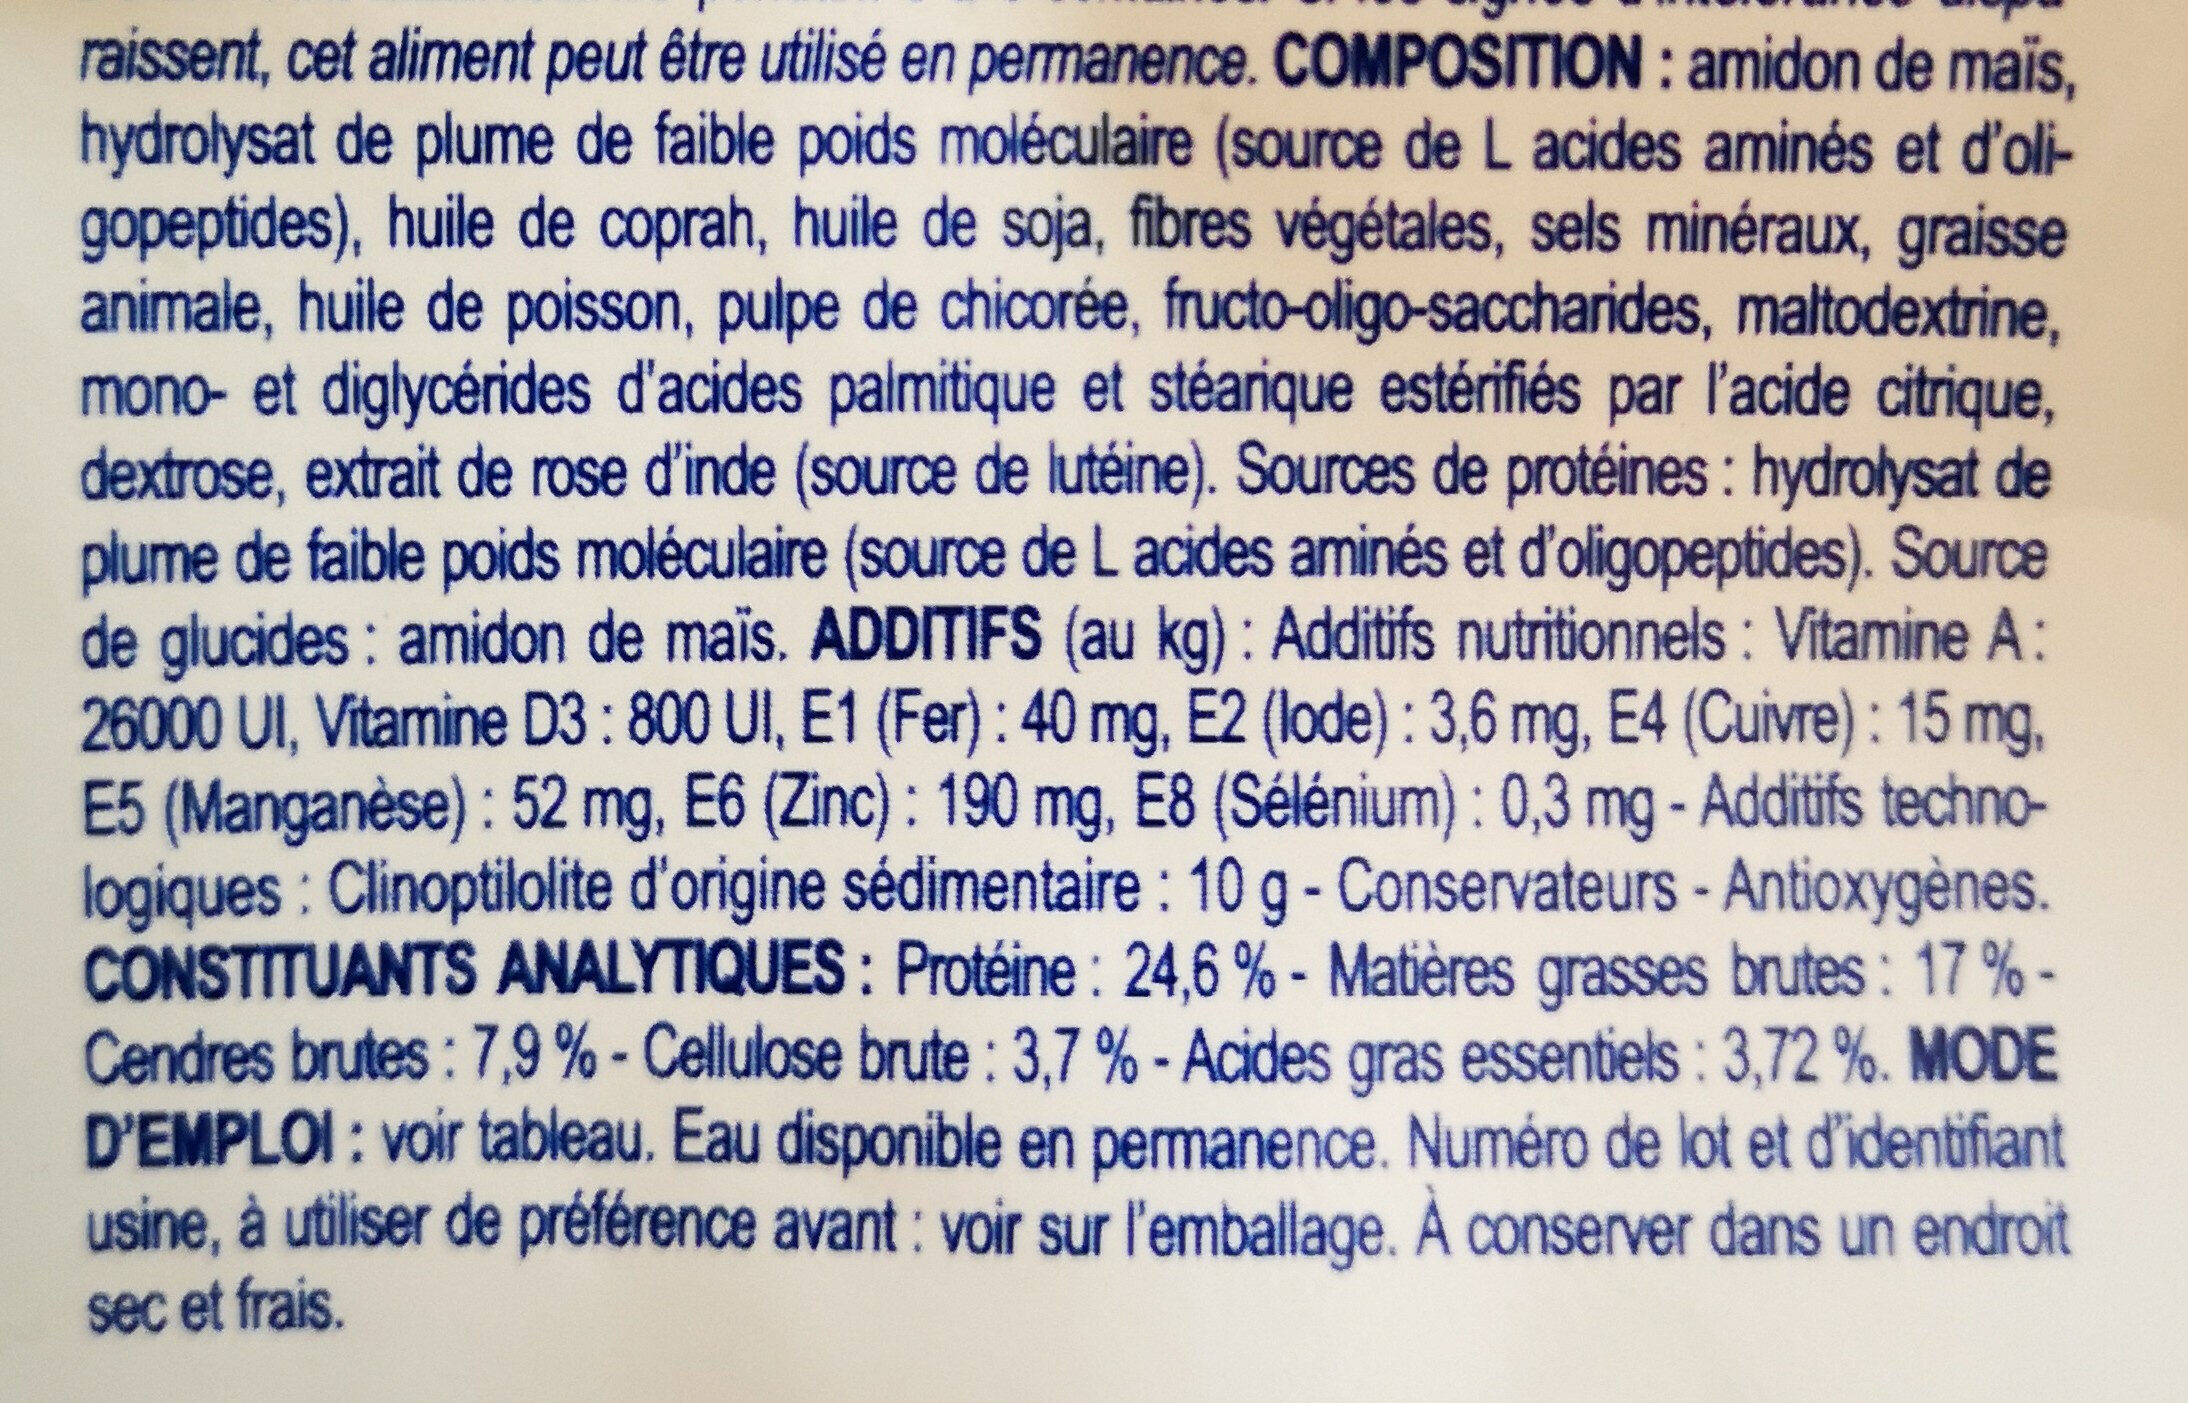 Royal Canin Anallergenic - Ingredients